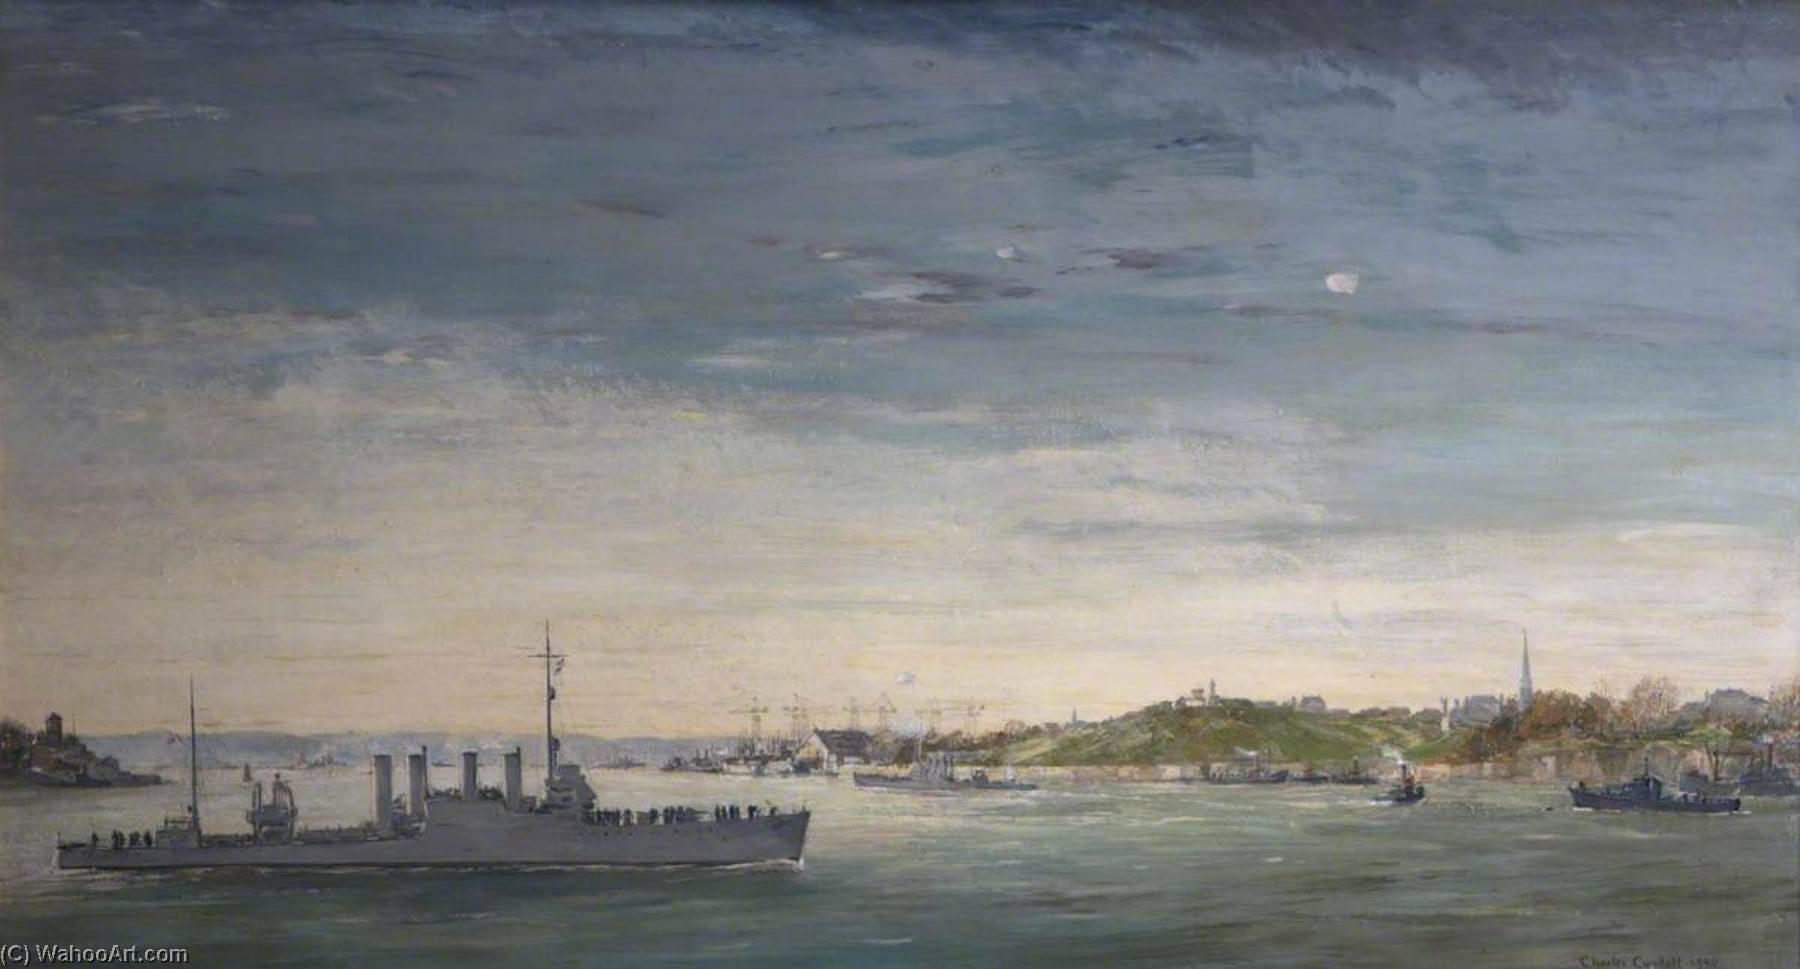 American Destroyers Arrive at Plymouth, Oil On Canvas by Charles Ernest Cundall